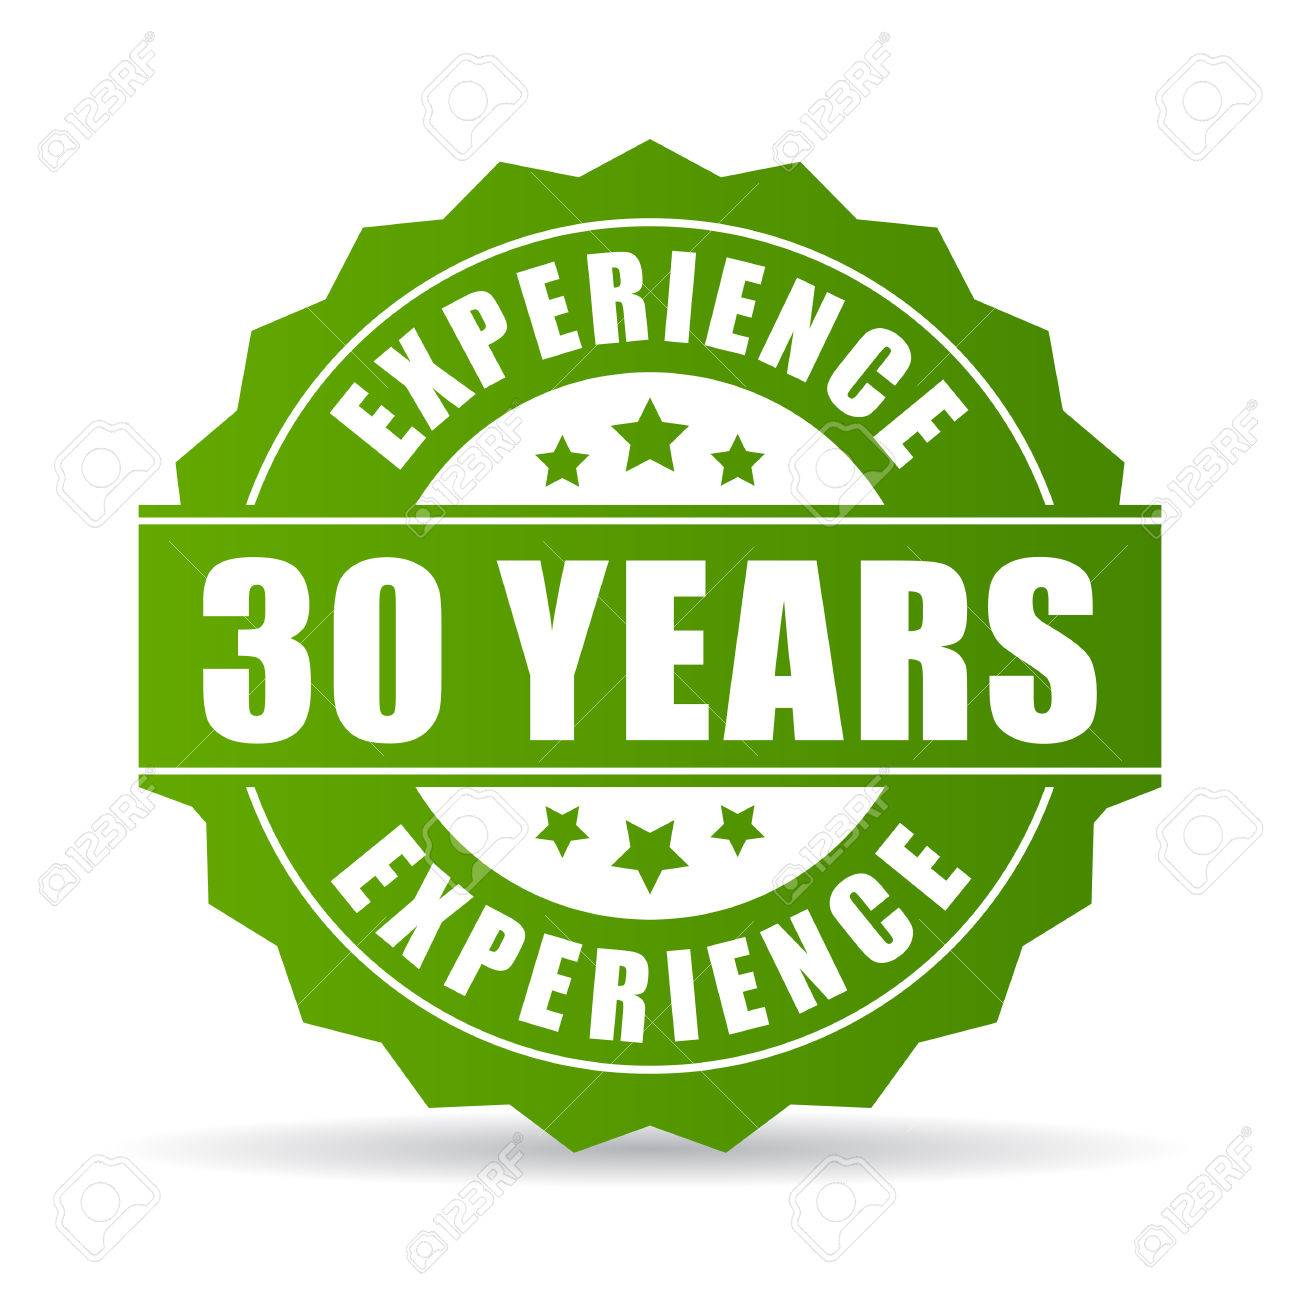 30 years experience vector icon - 82369917